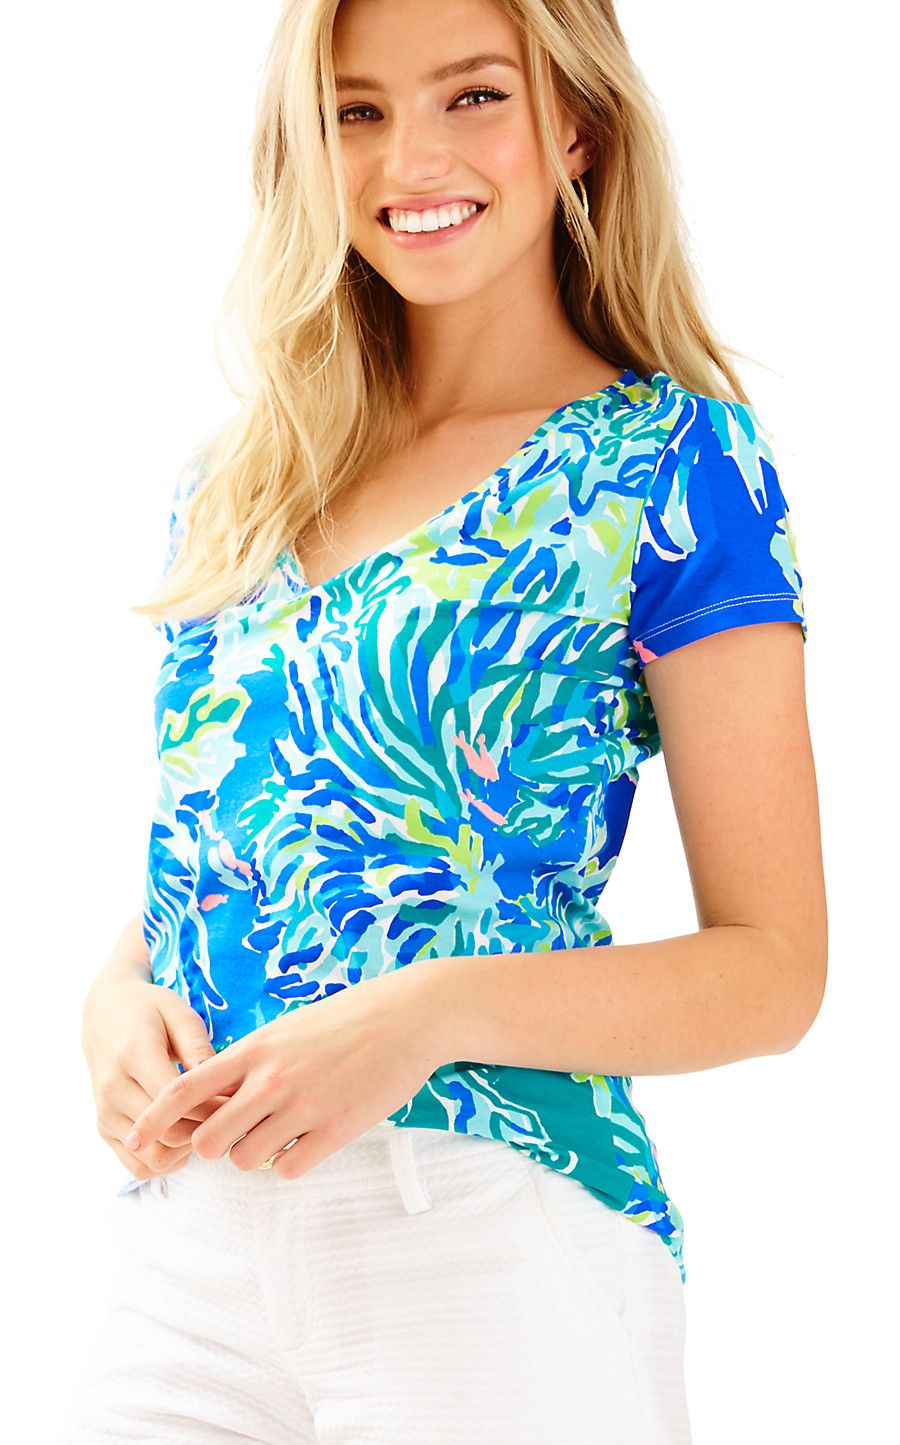 afcb39ab7499e6 Michele Top - Lilly Pulitzer | Lovely Lilly Pulitzer | V neck tops ...